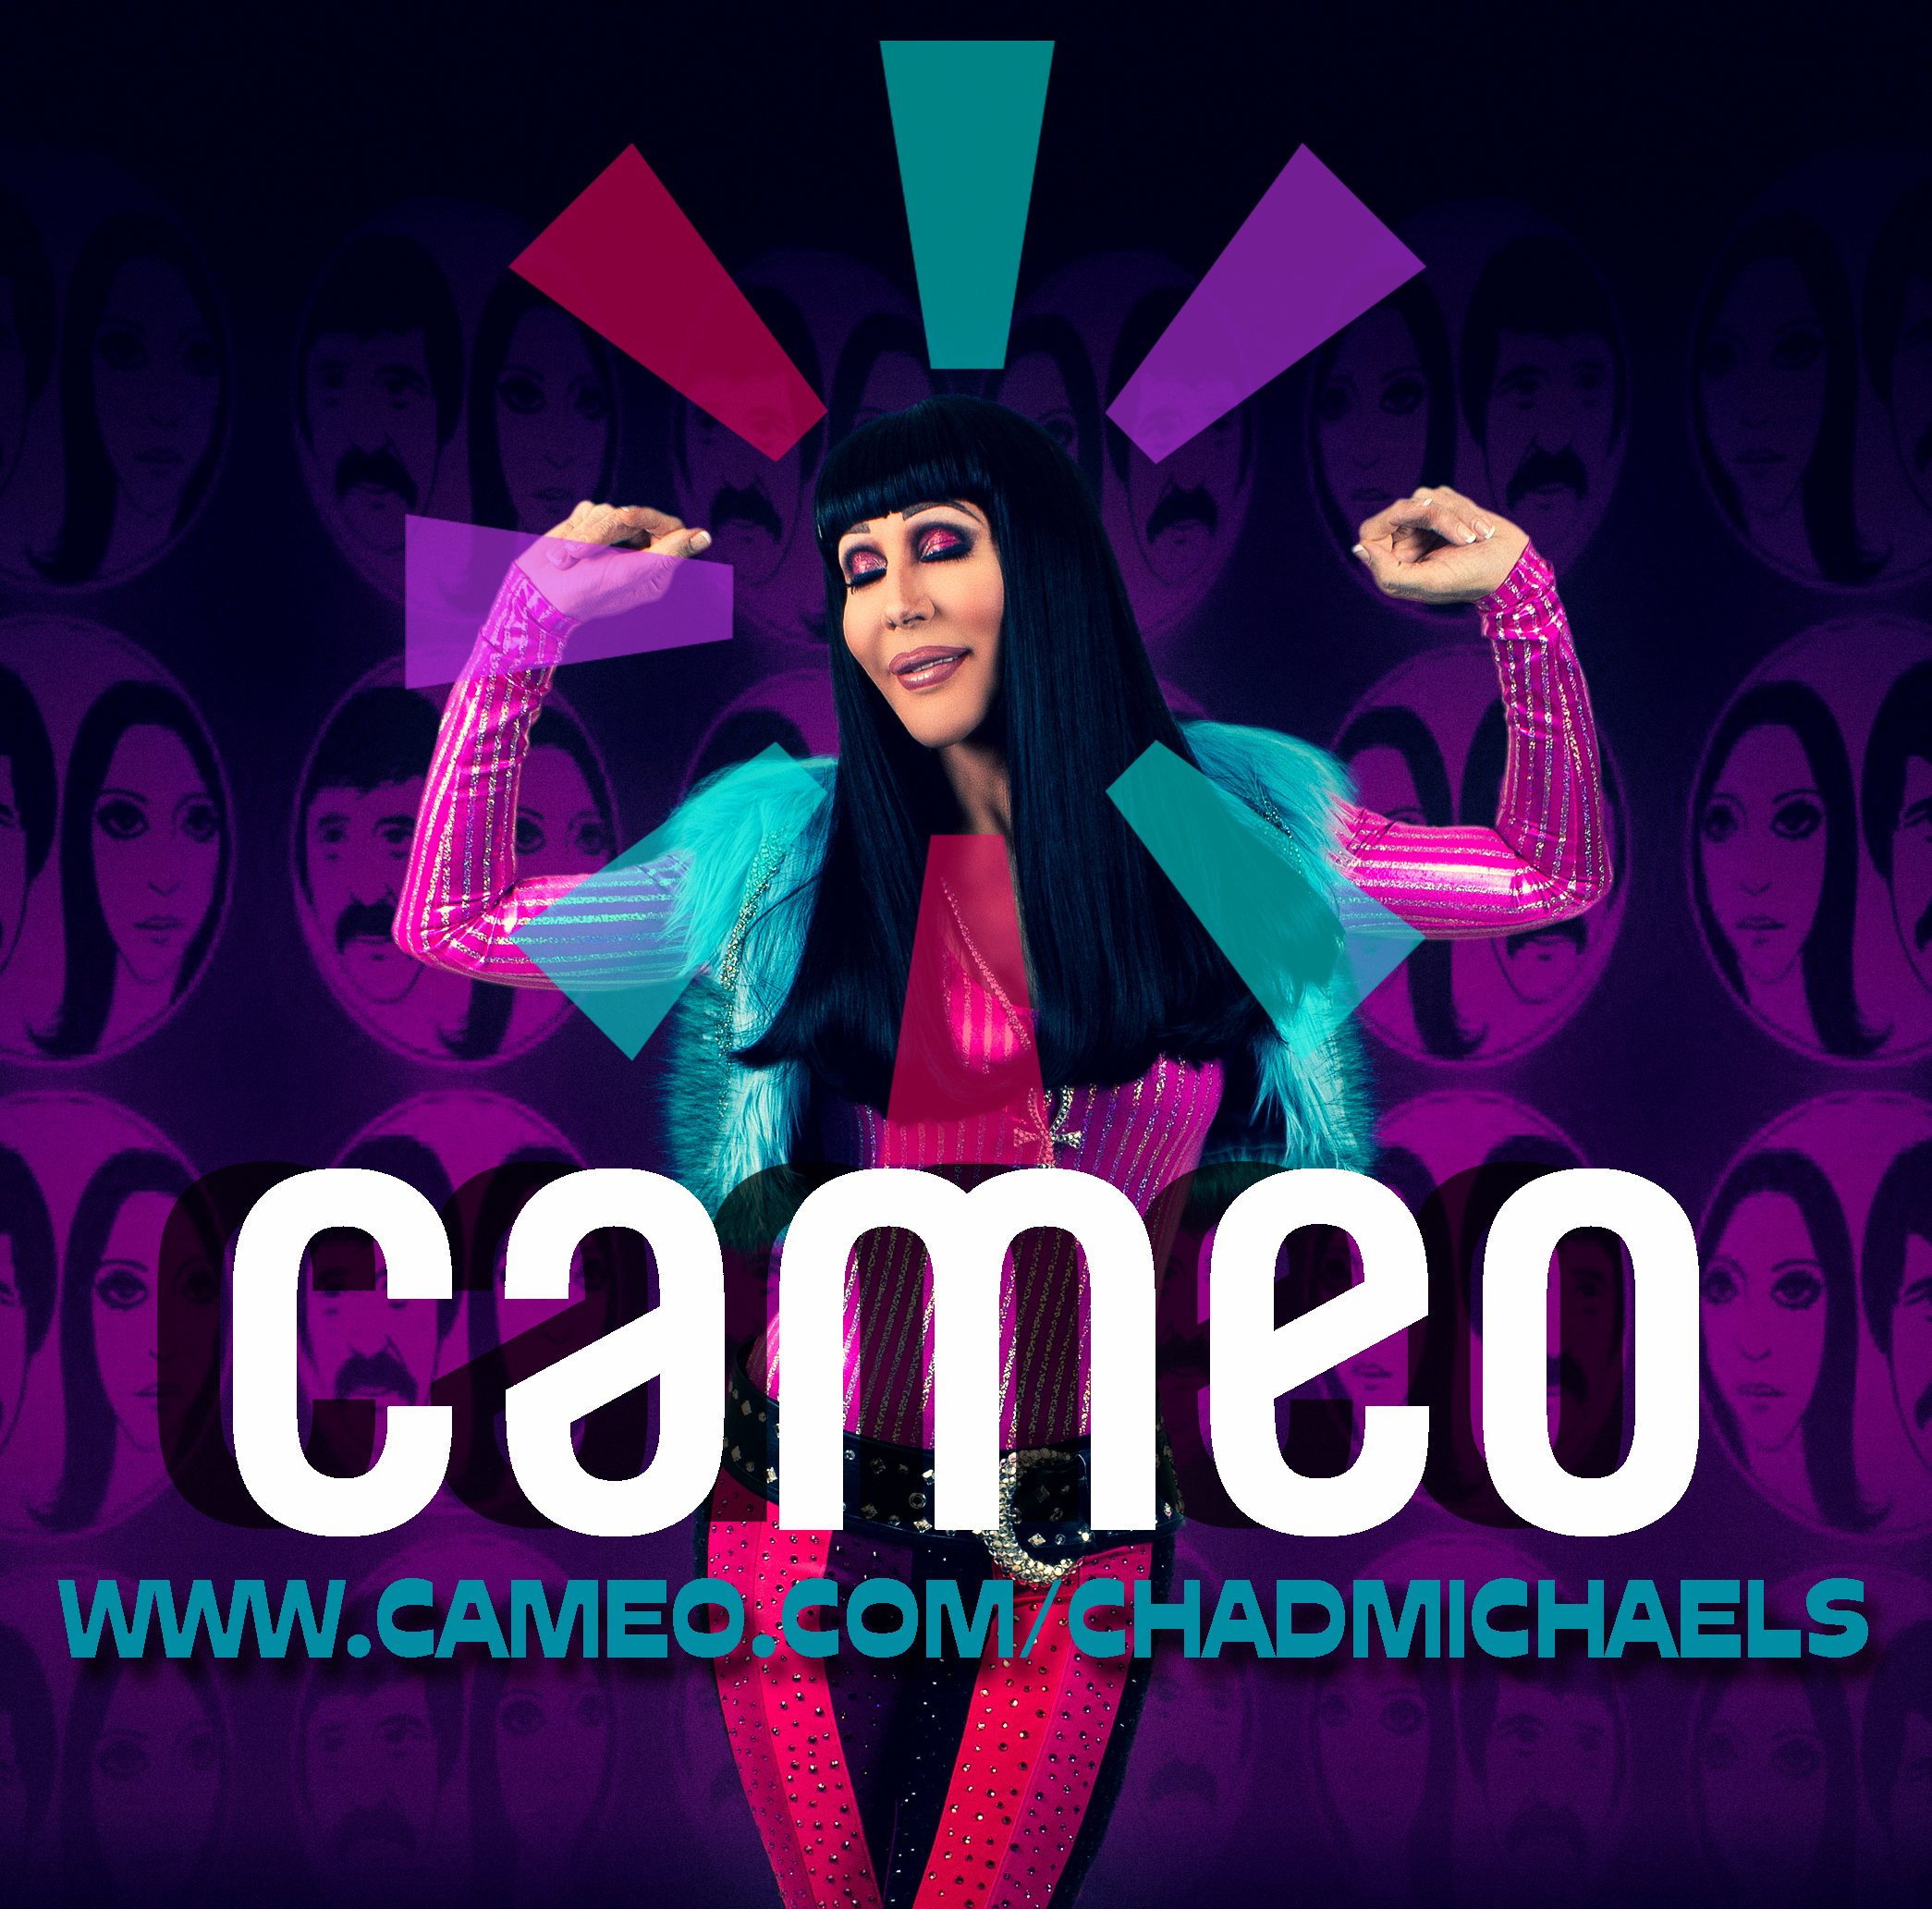 Book Chad Michaels On Cameo